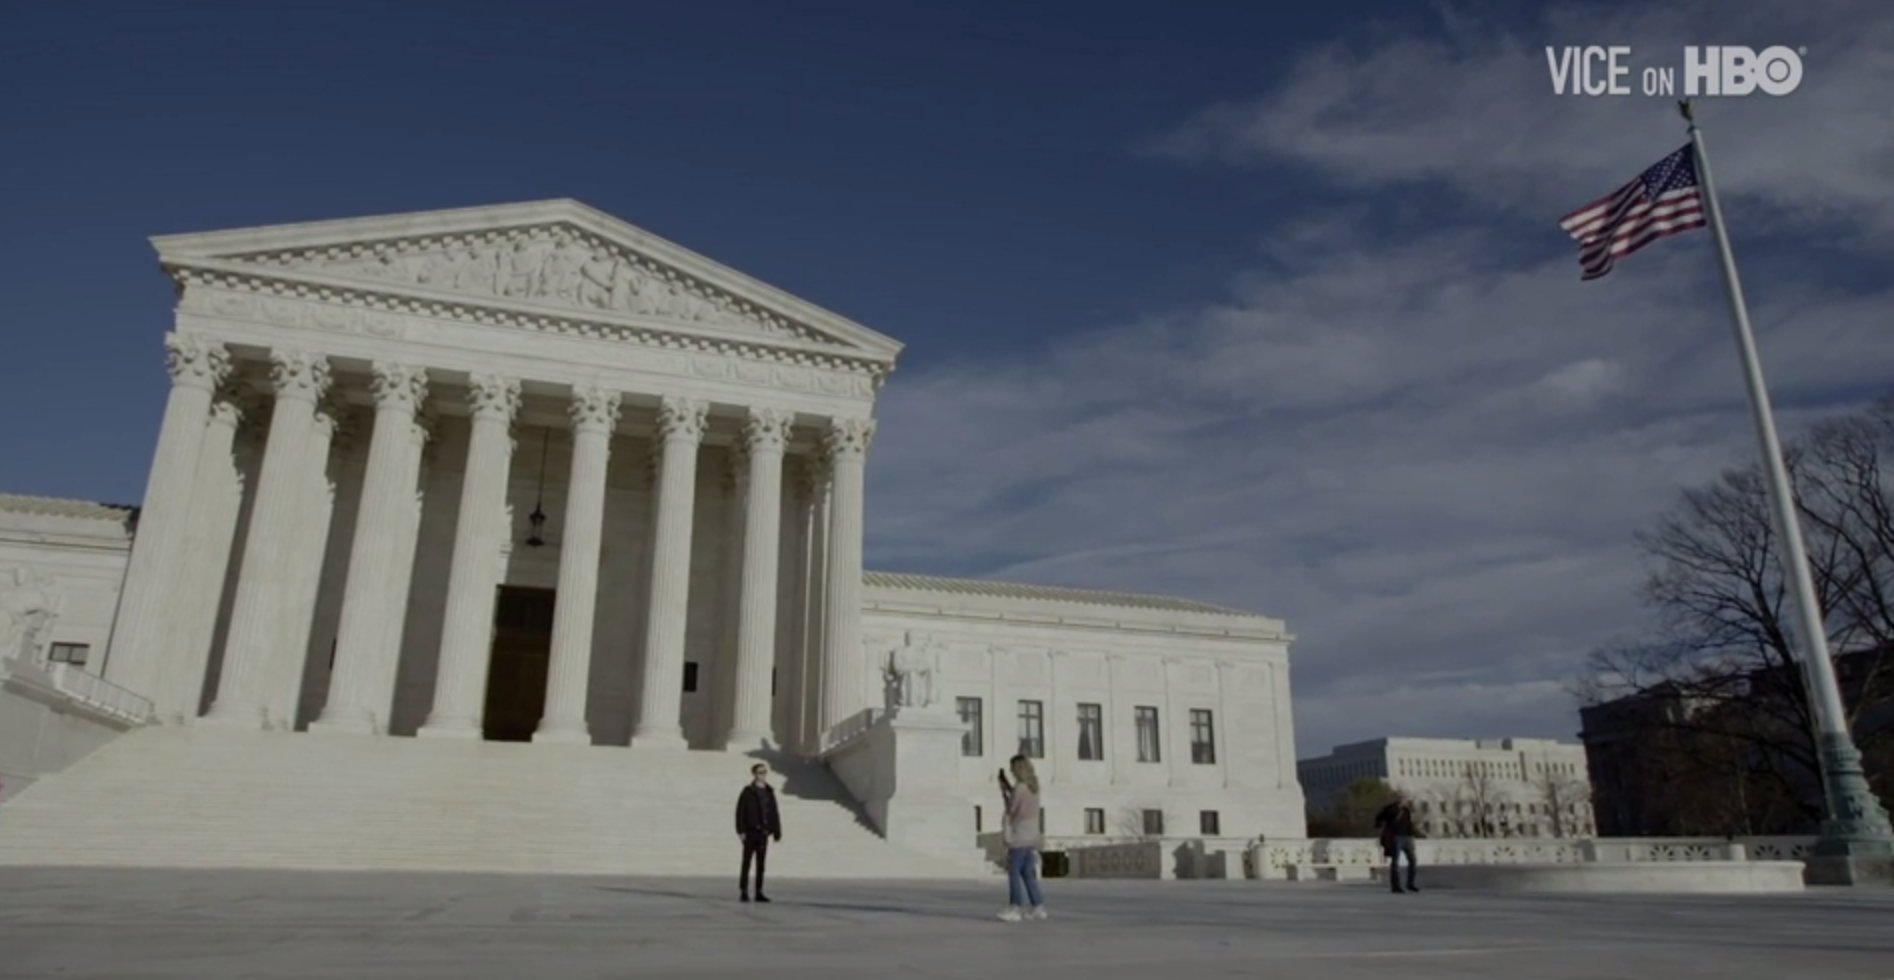 In November, the Supreme Court will hear a case on gerrymandering that could set precdent across the U.S. #VICEonHBO https://t.co/vj47pgndIn